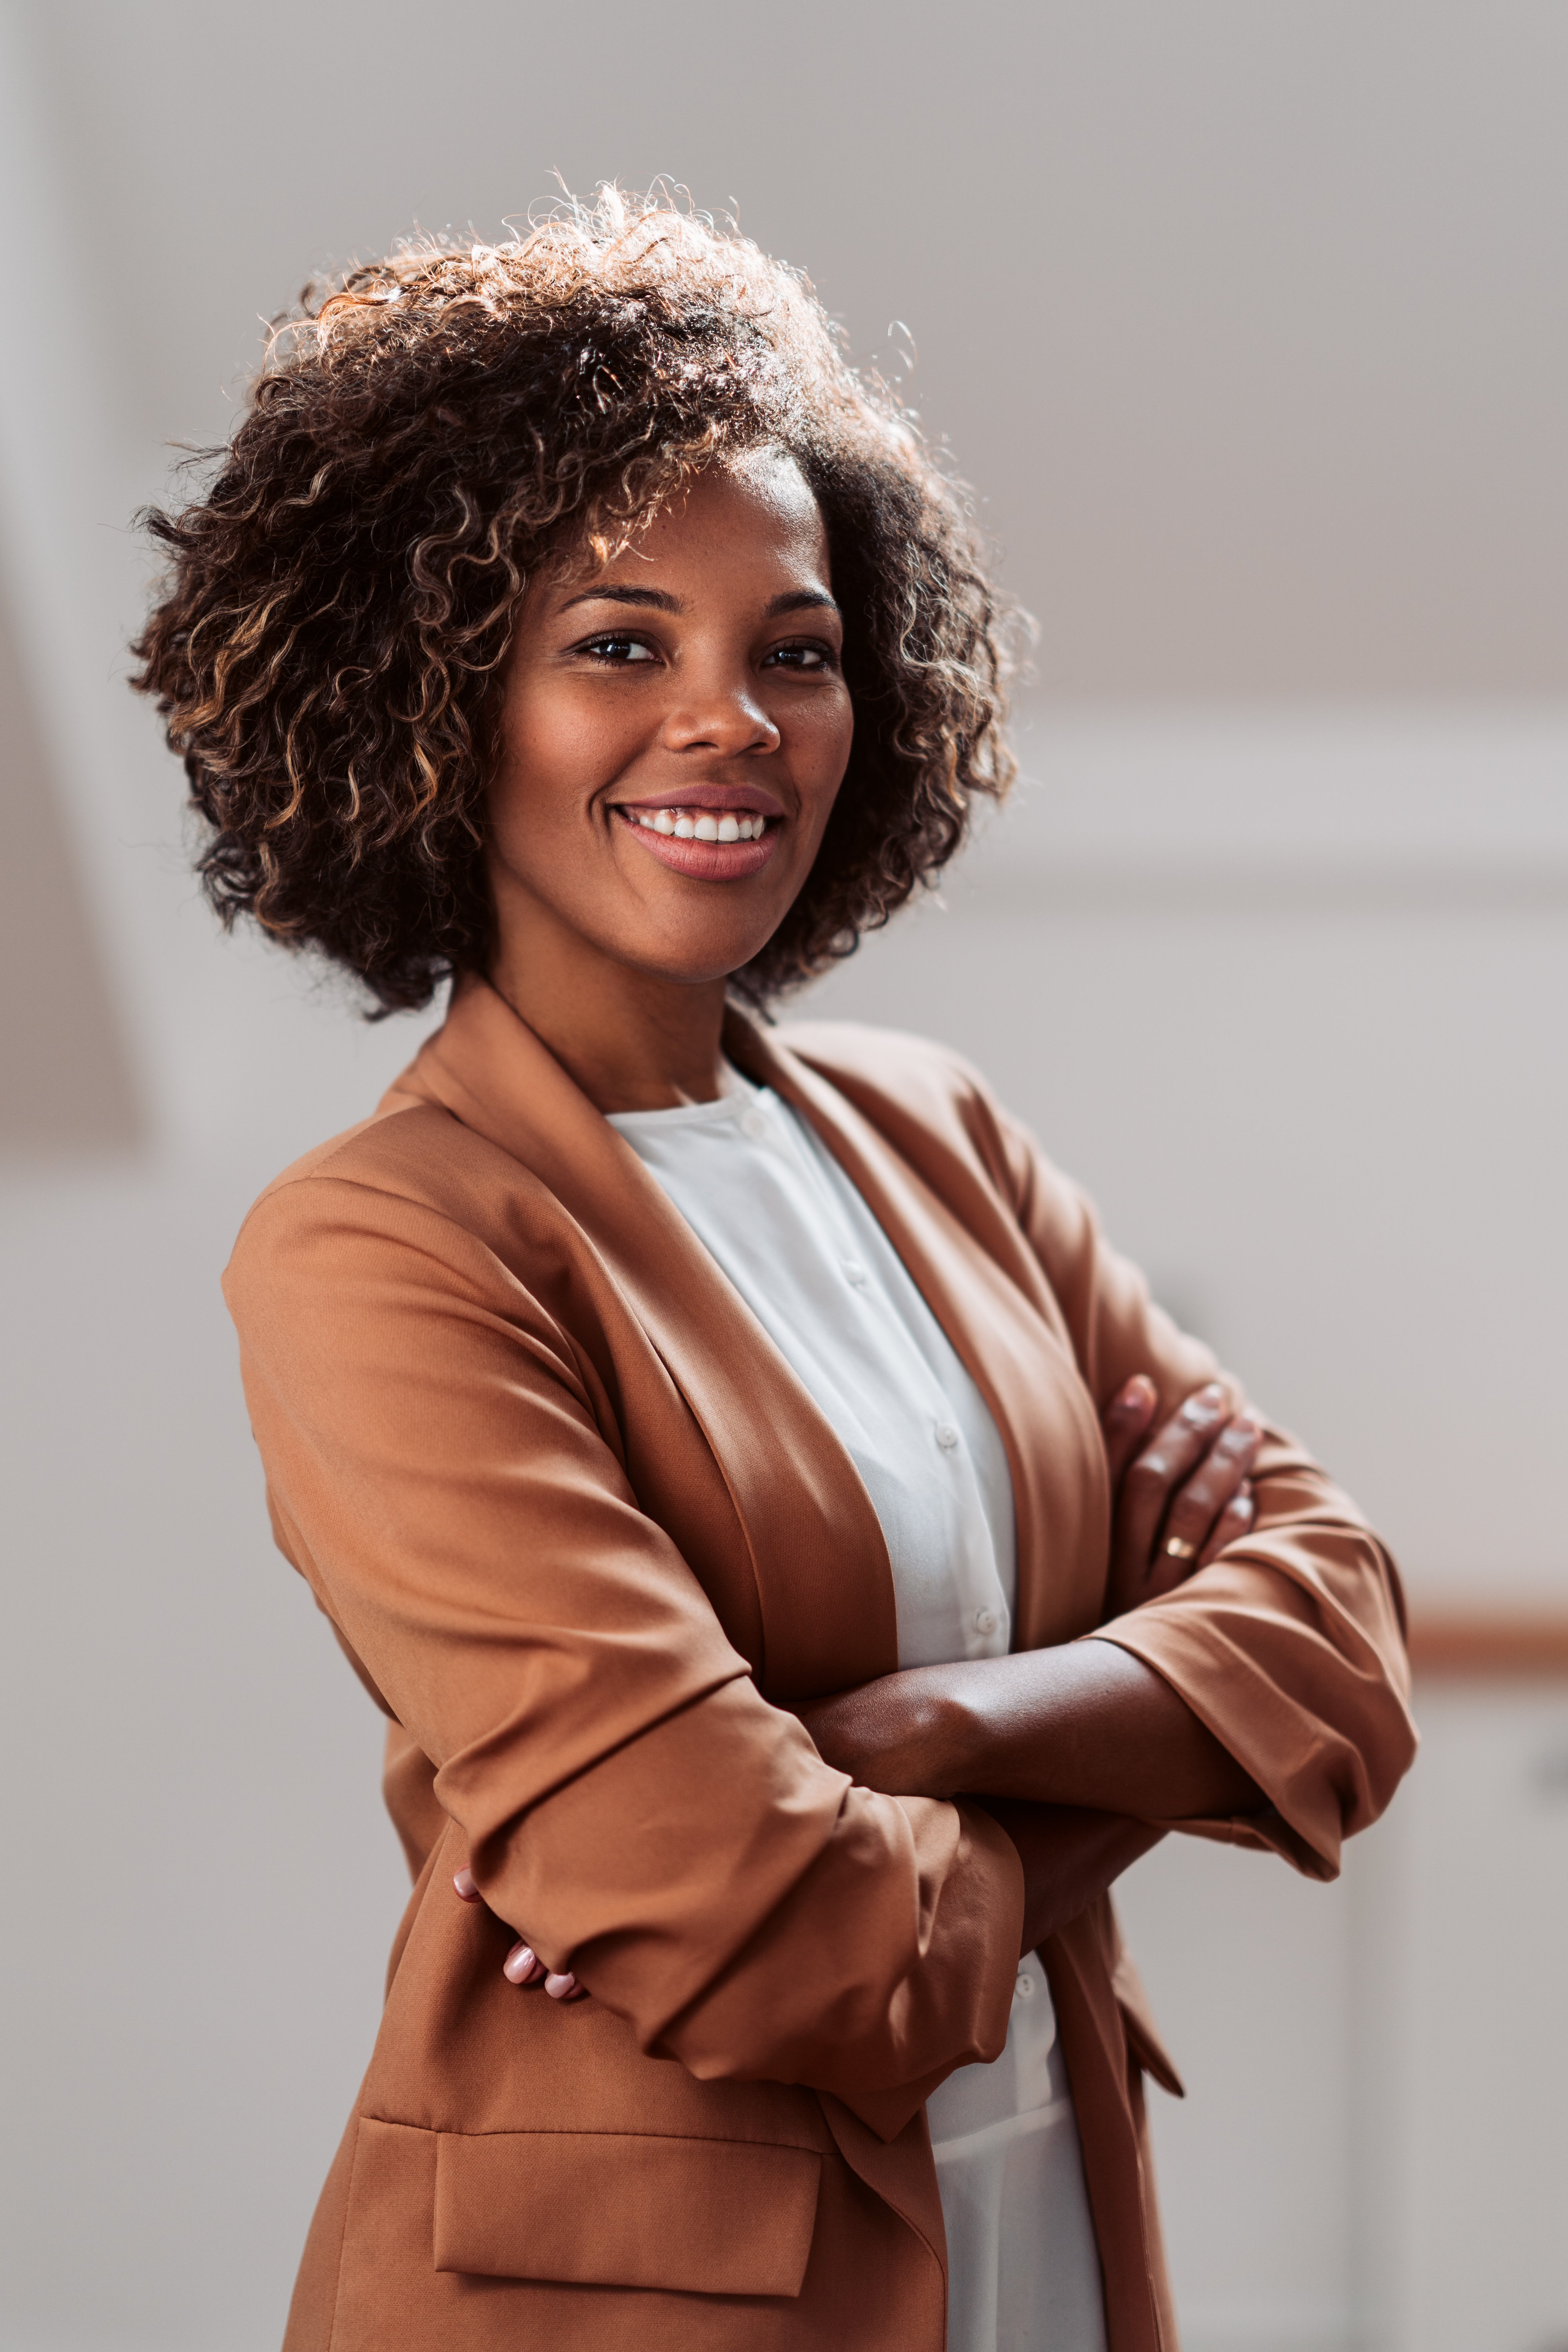 Portrait of young cheerful african american businesswoman wearing brown suit smiling and looking at camera